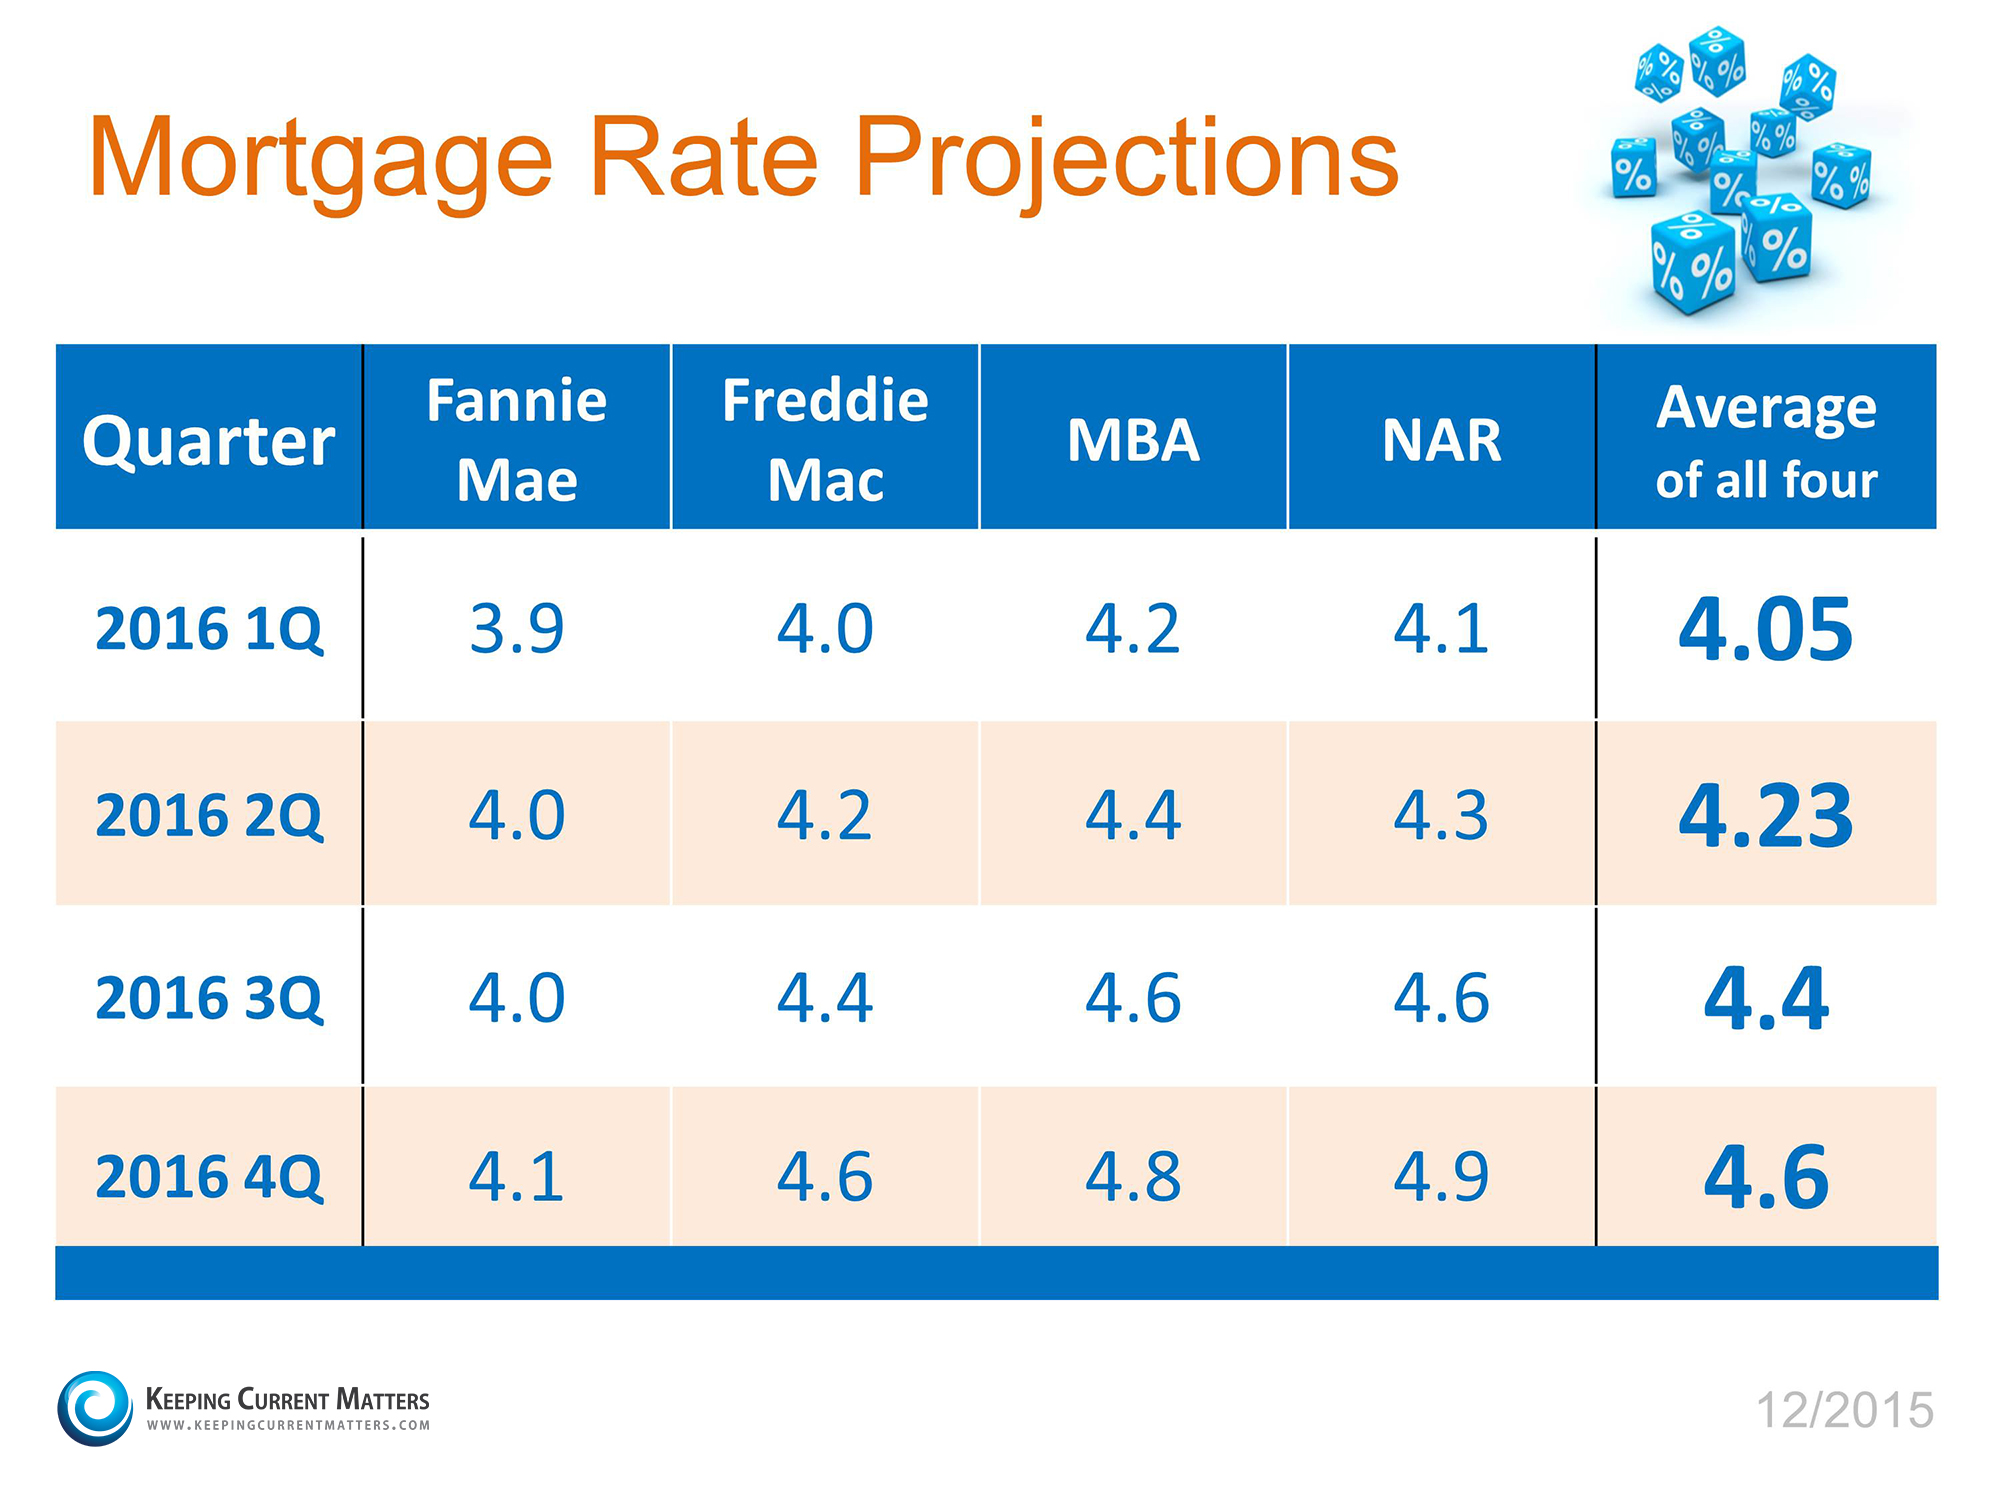 Home interest rate projections